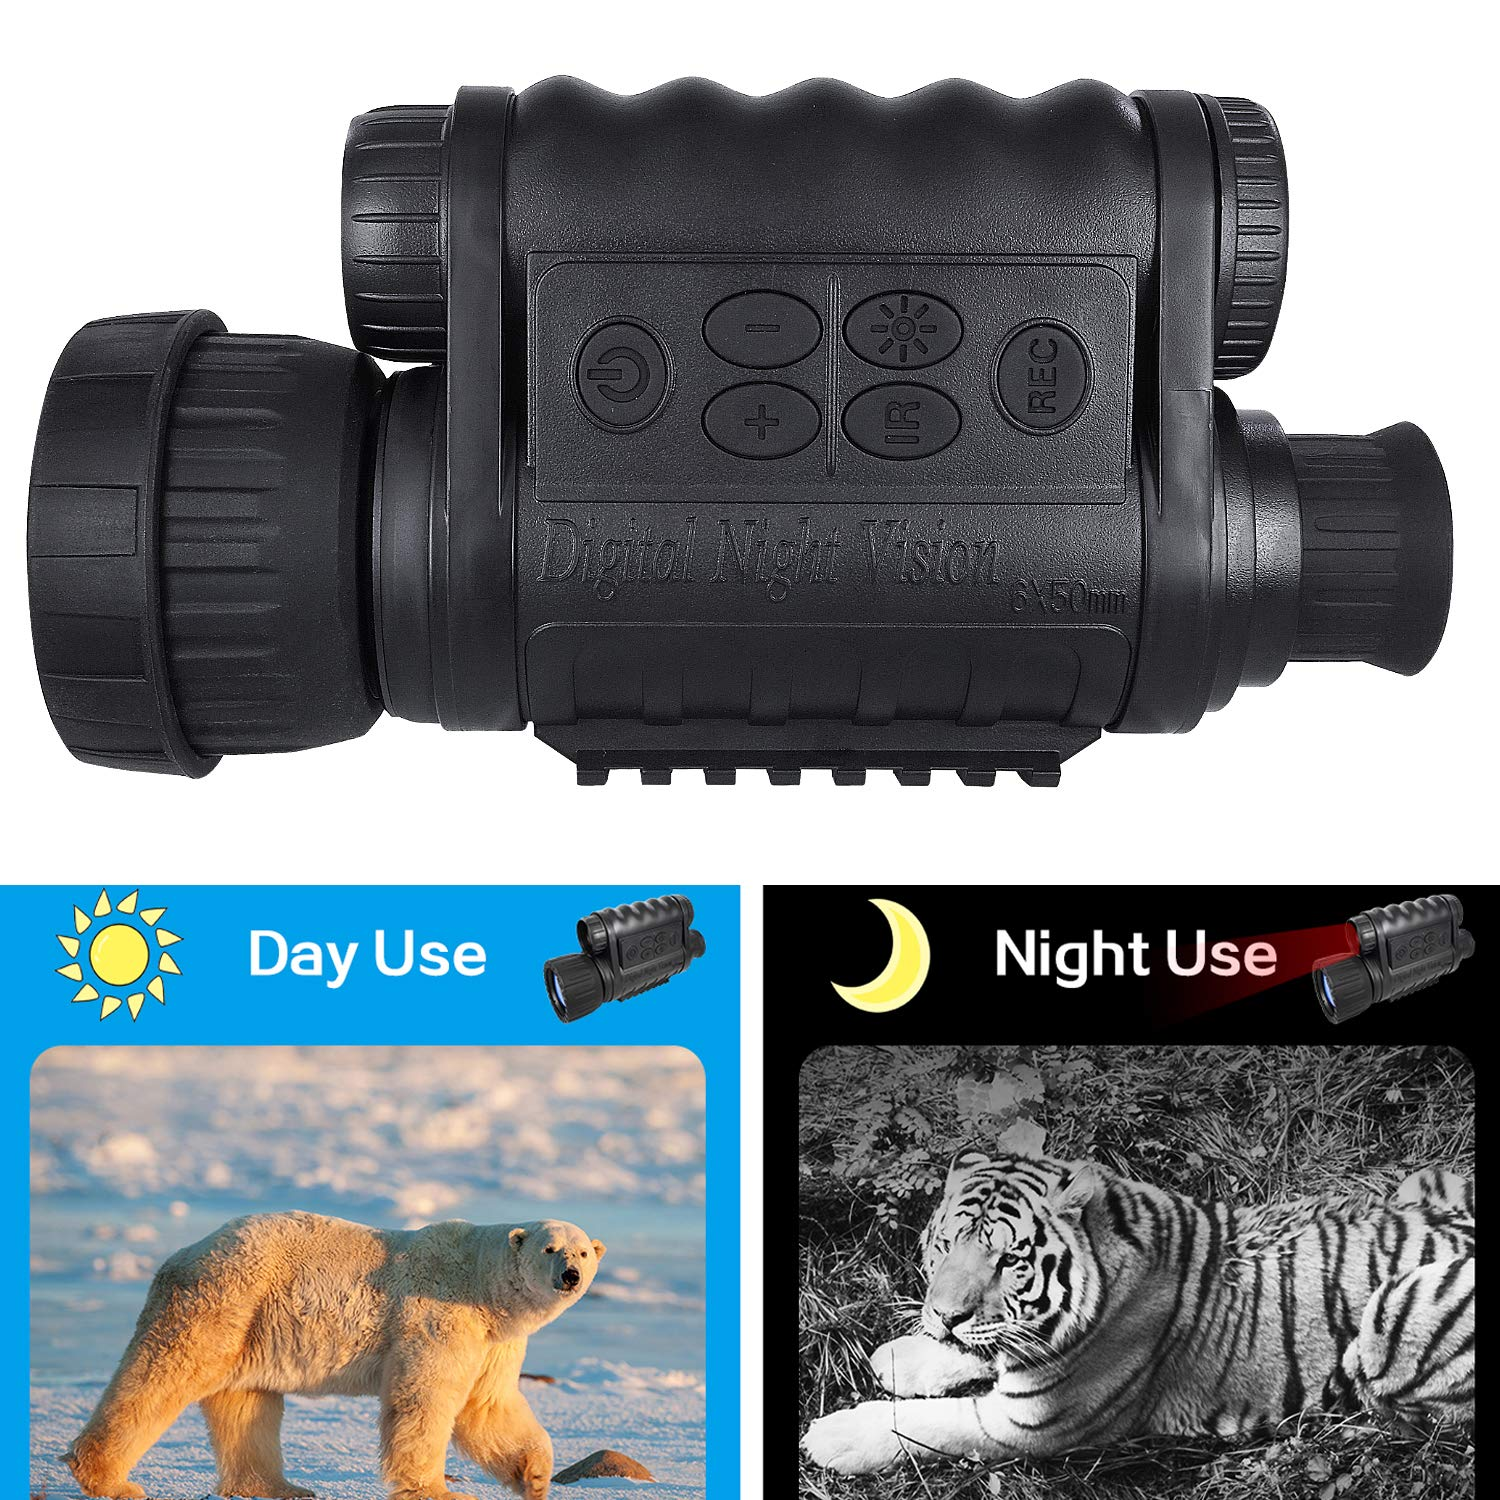 Night Vision Monocular, HD Digital Infrared Camera Scope 6x50mm with 1.5 inch TFT LCD High Power Hunting Gear Takes 5mp Photo 720 Video up to 350m/1150ft Detection Distance by Bestguarder